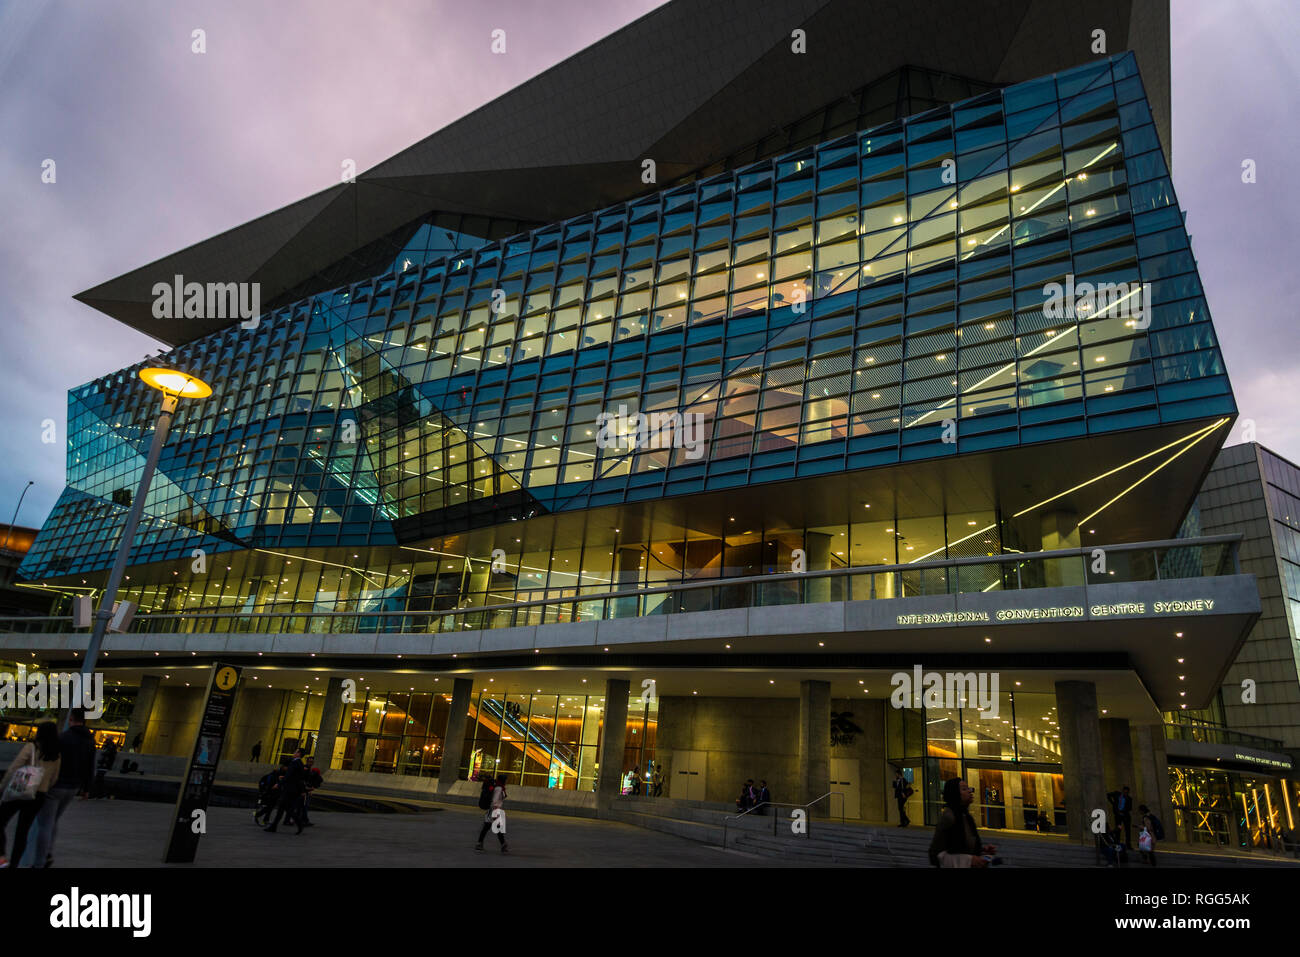 International Convention Centre,  (ICC Sydney), a convention, exhibition and entertainment precinct, Darling Harbour, Sydney, NSW, Australia - Stock Image